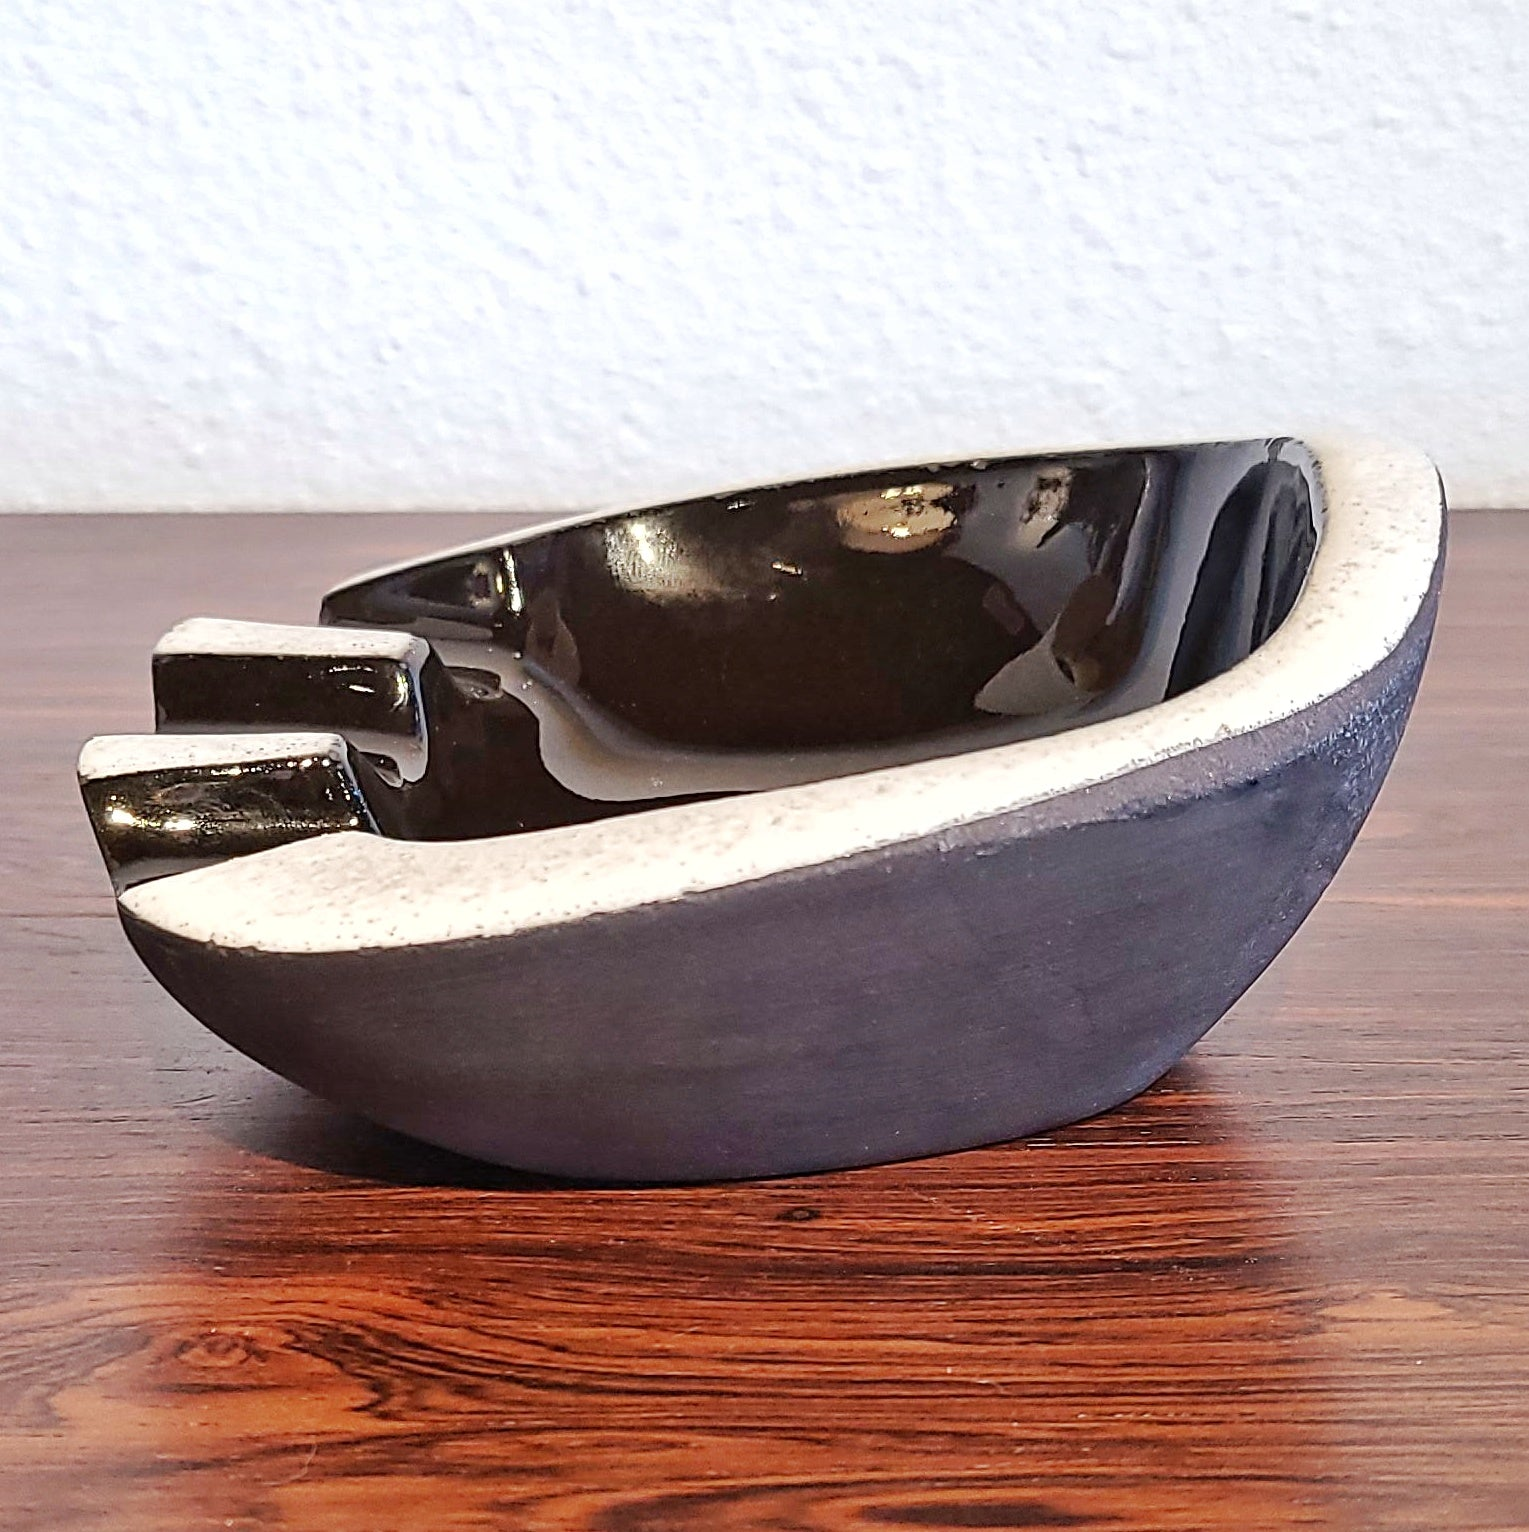 JAAP RAVELLI 'BLACK & WHITE' DECOR 'BEAR PAW' ASHTRAY/TRINKET DISH No. 250